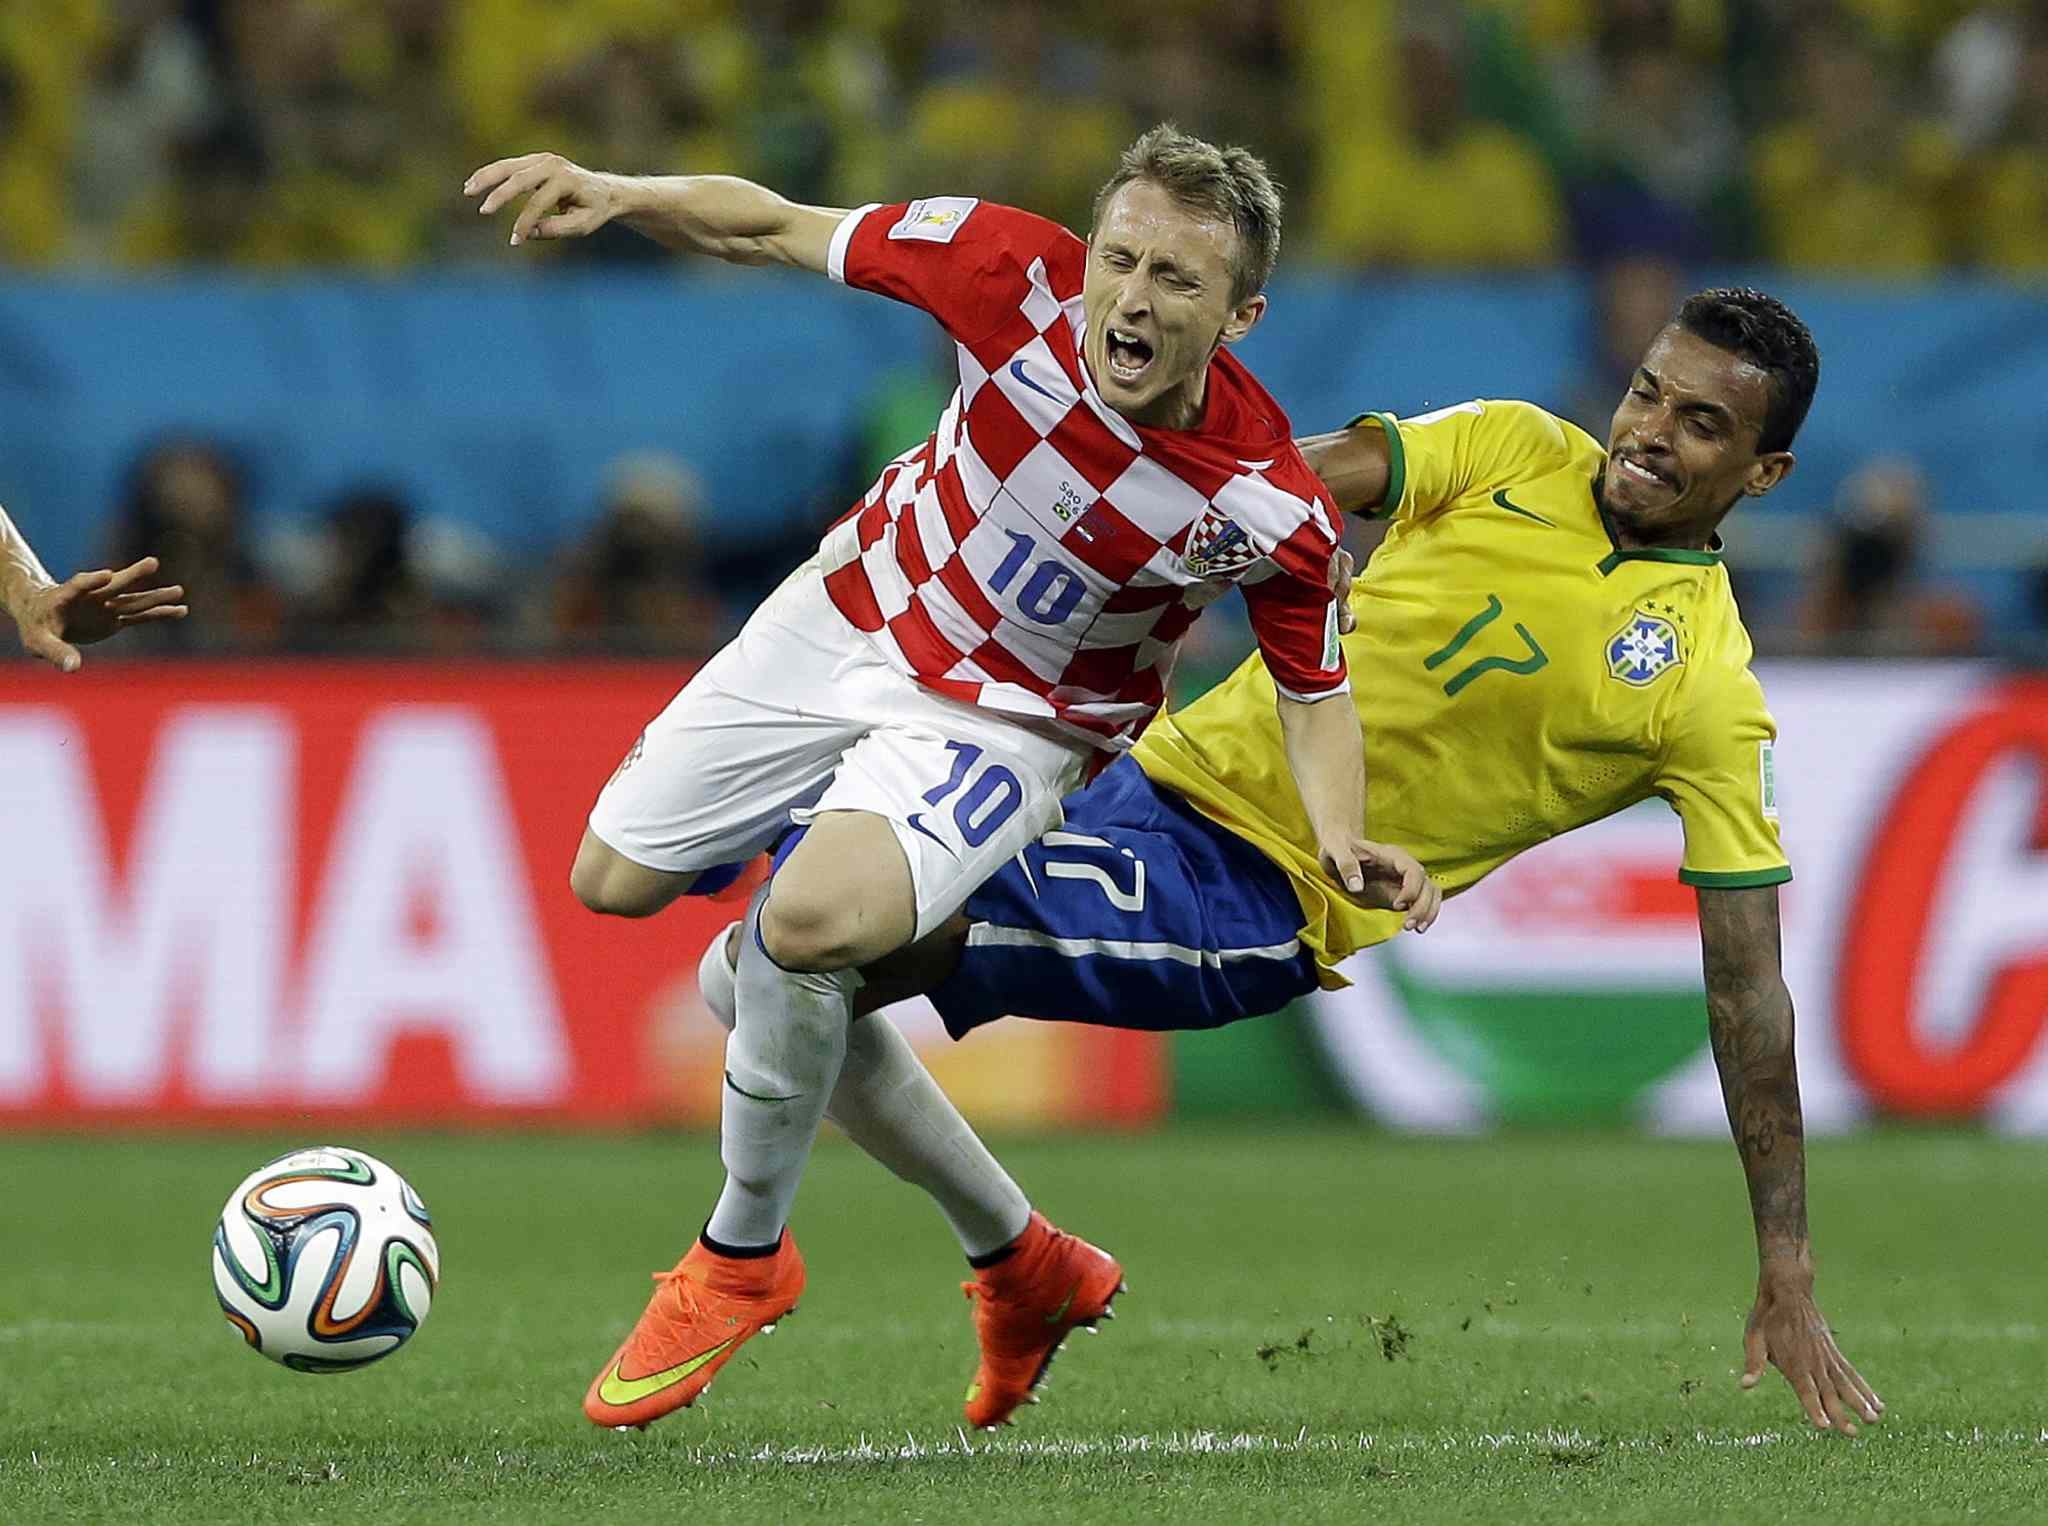 Croatia's Luka Modric is fouled by Brazil's Luiz Gustavo, right, during the group A World Cup soccer match on Thursday.